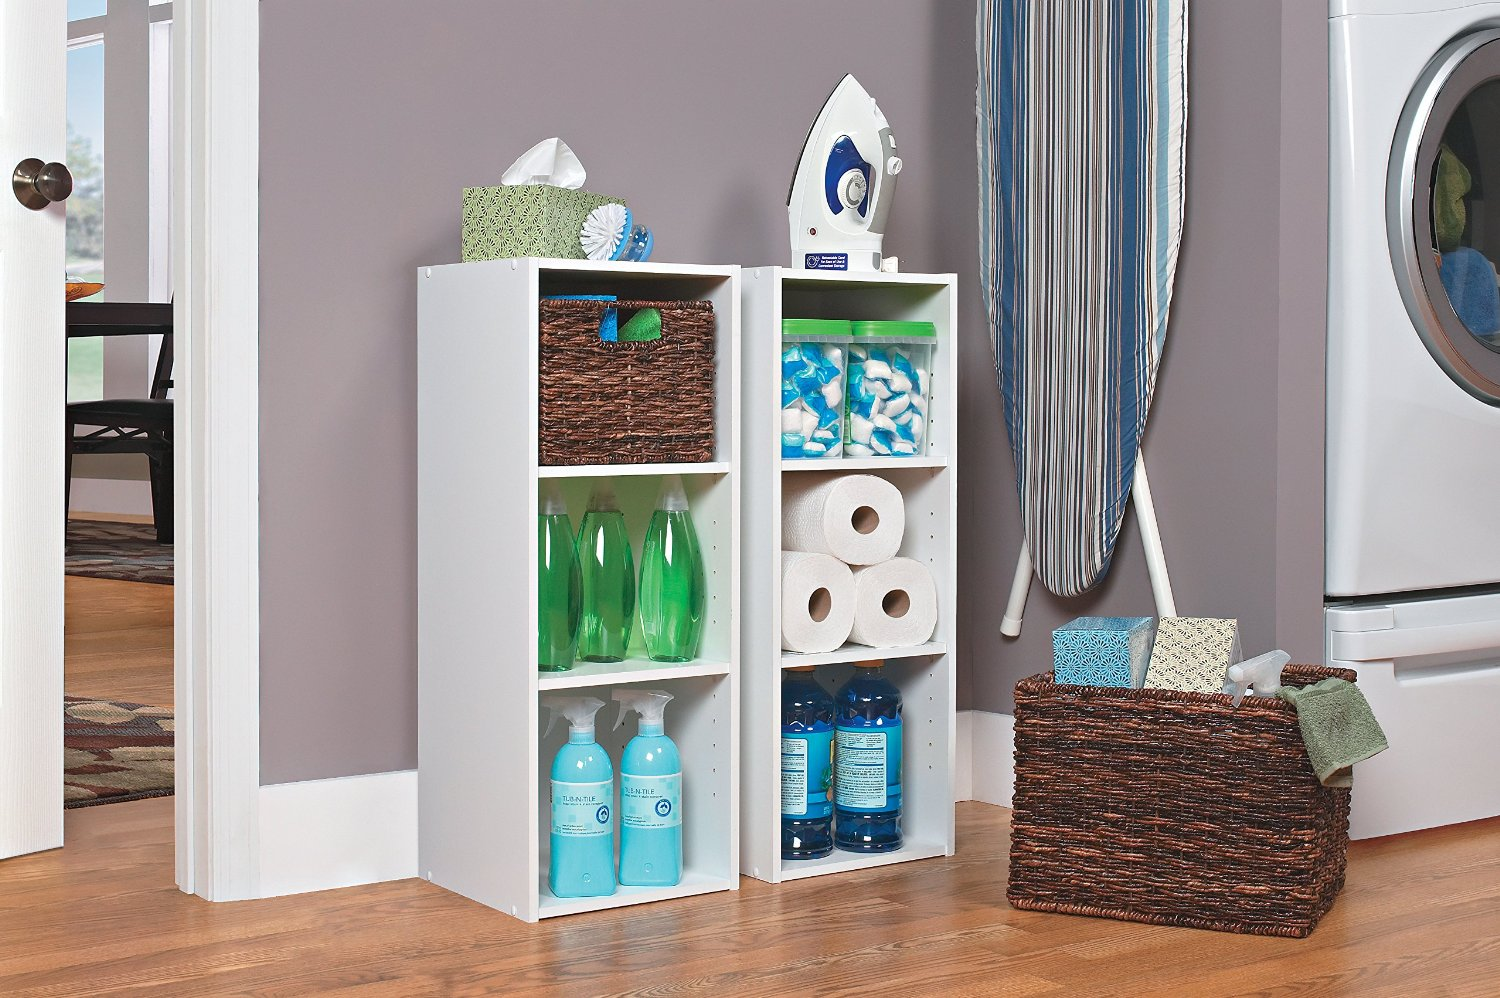 shelf box organizer closet basket items storage of foldable cube set hanging shelves